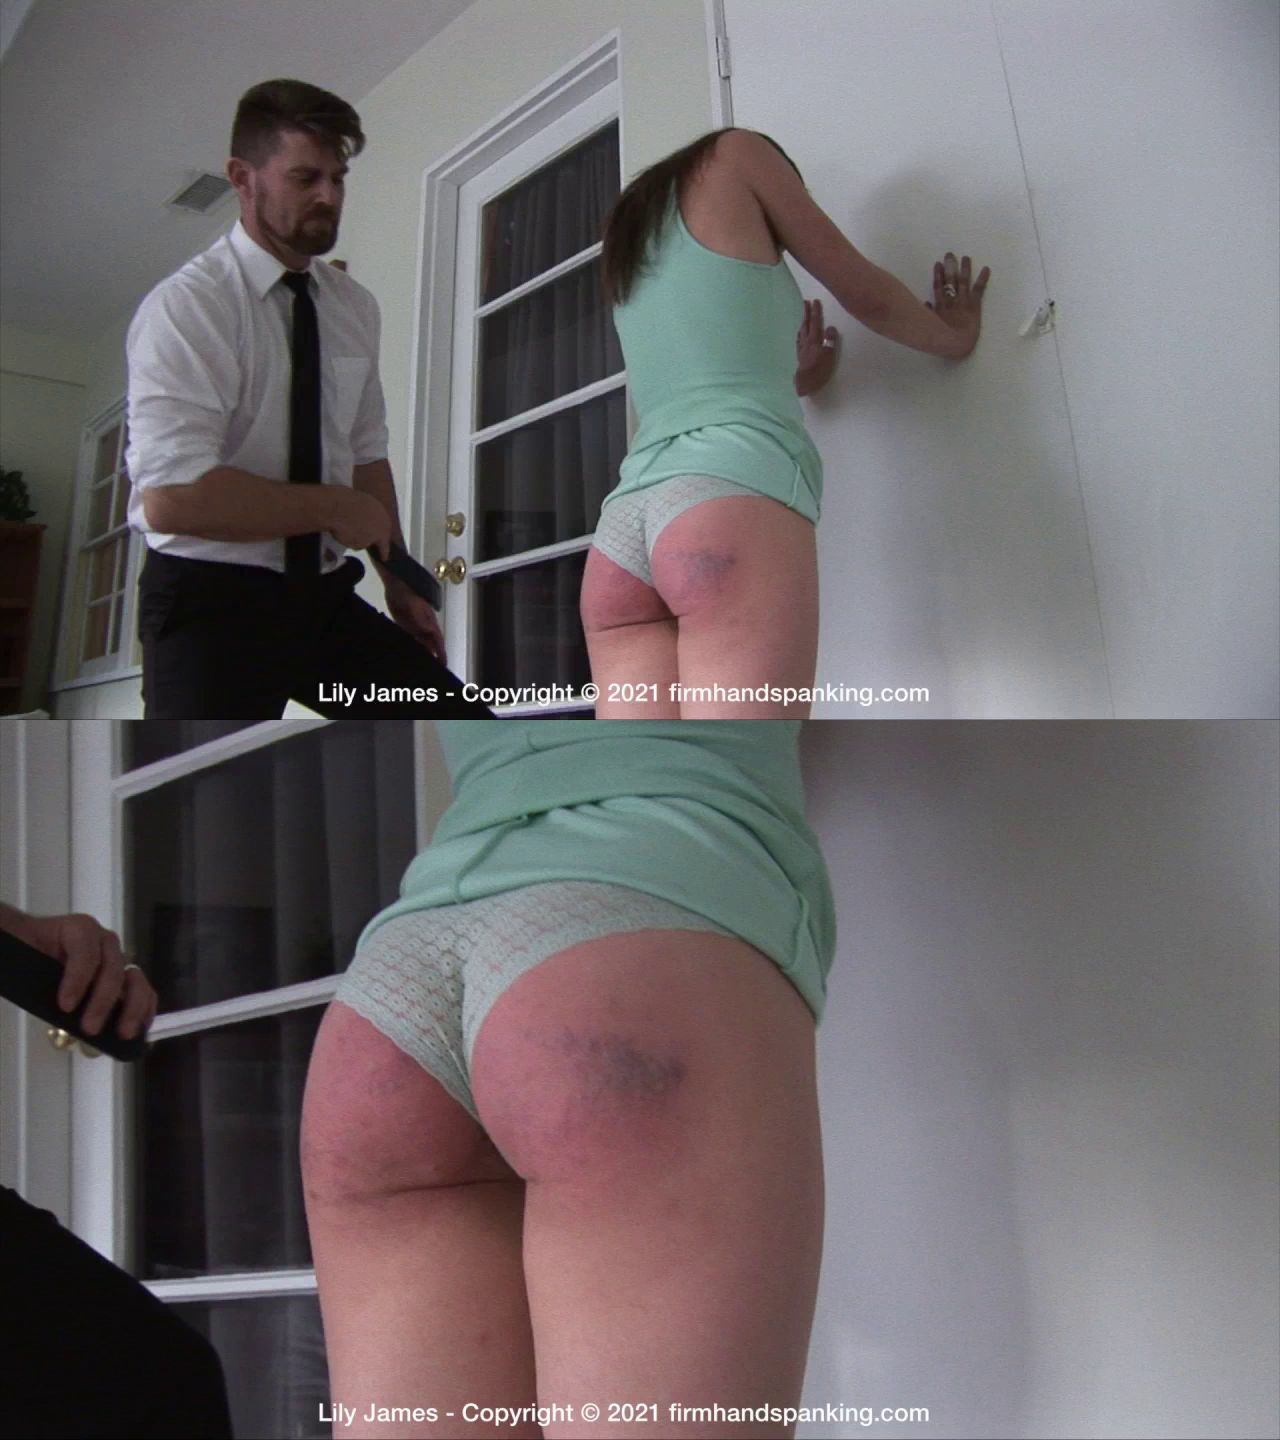 firmhandspanking – MP4/HD – Lily James – Discipline Counselor/Wealthy parents and a bratty attitude means a sore bottom is due for Lily James!